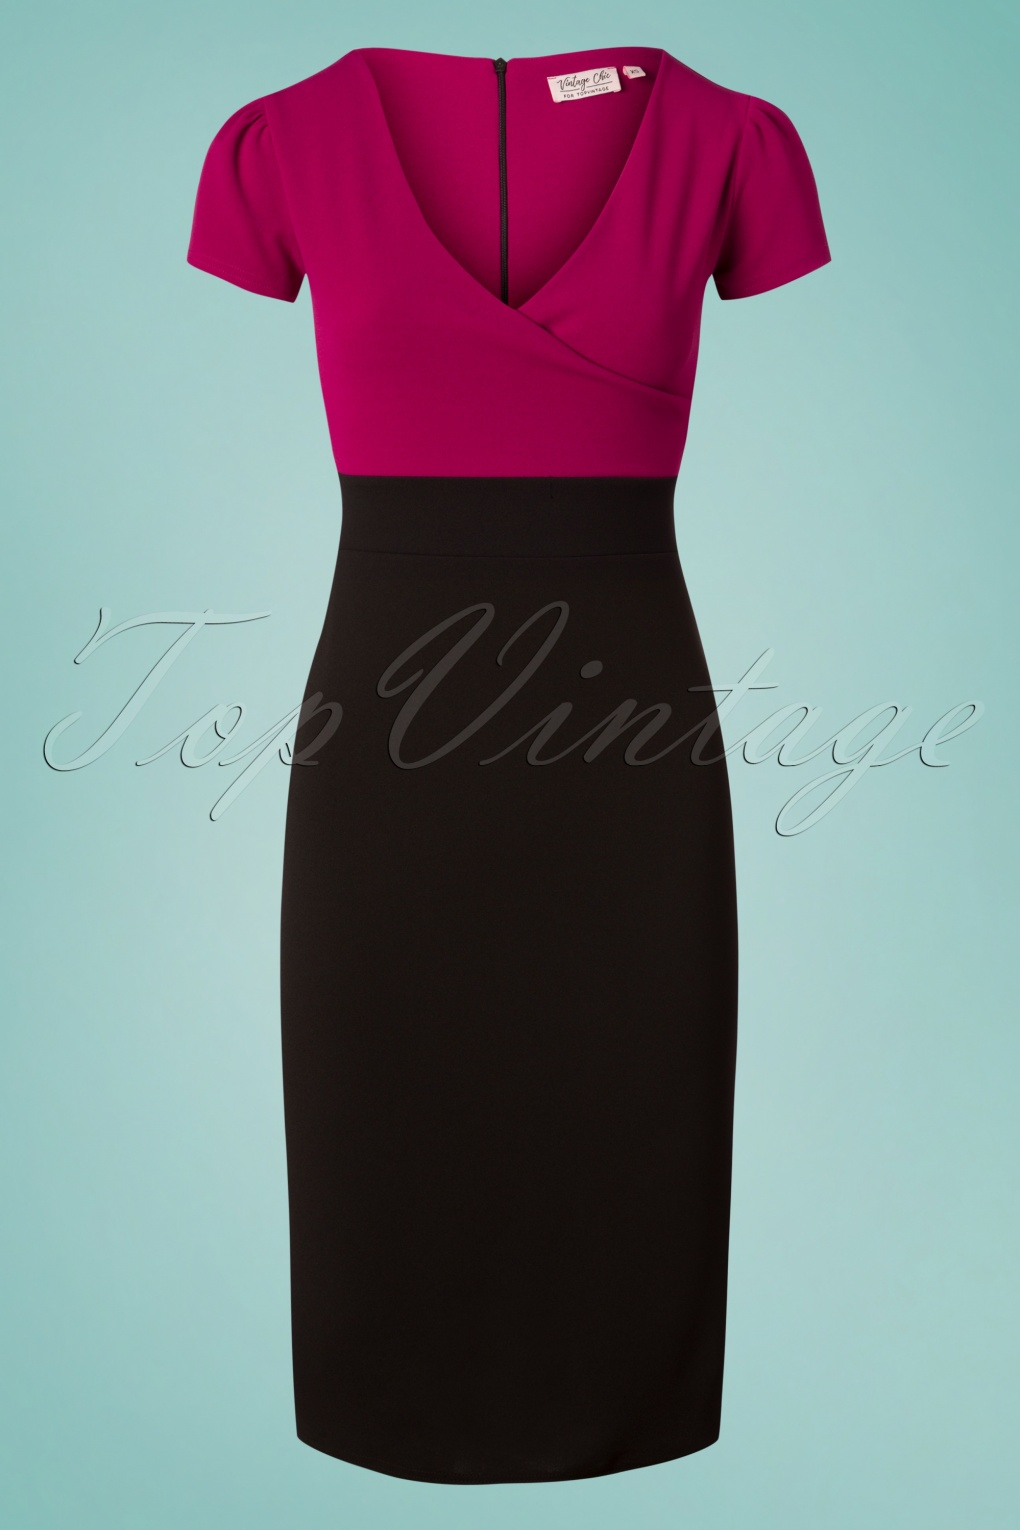 What Did Women Wear in the 1950s? 1950s Fashion Guide 50s Kristy Pencil Dress in Black and Amaranth £39.78 AT vintagedancer.com